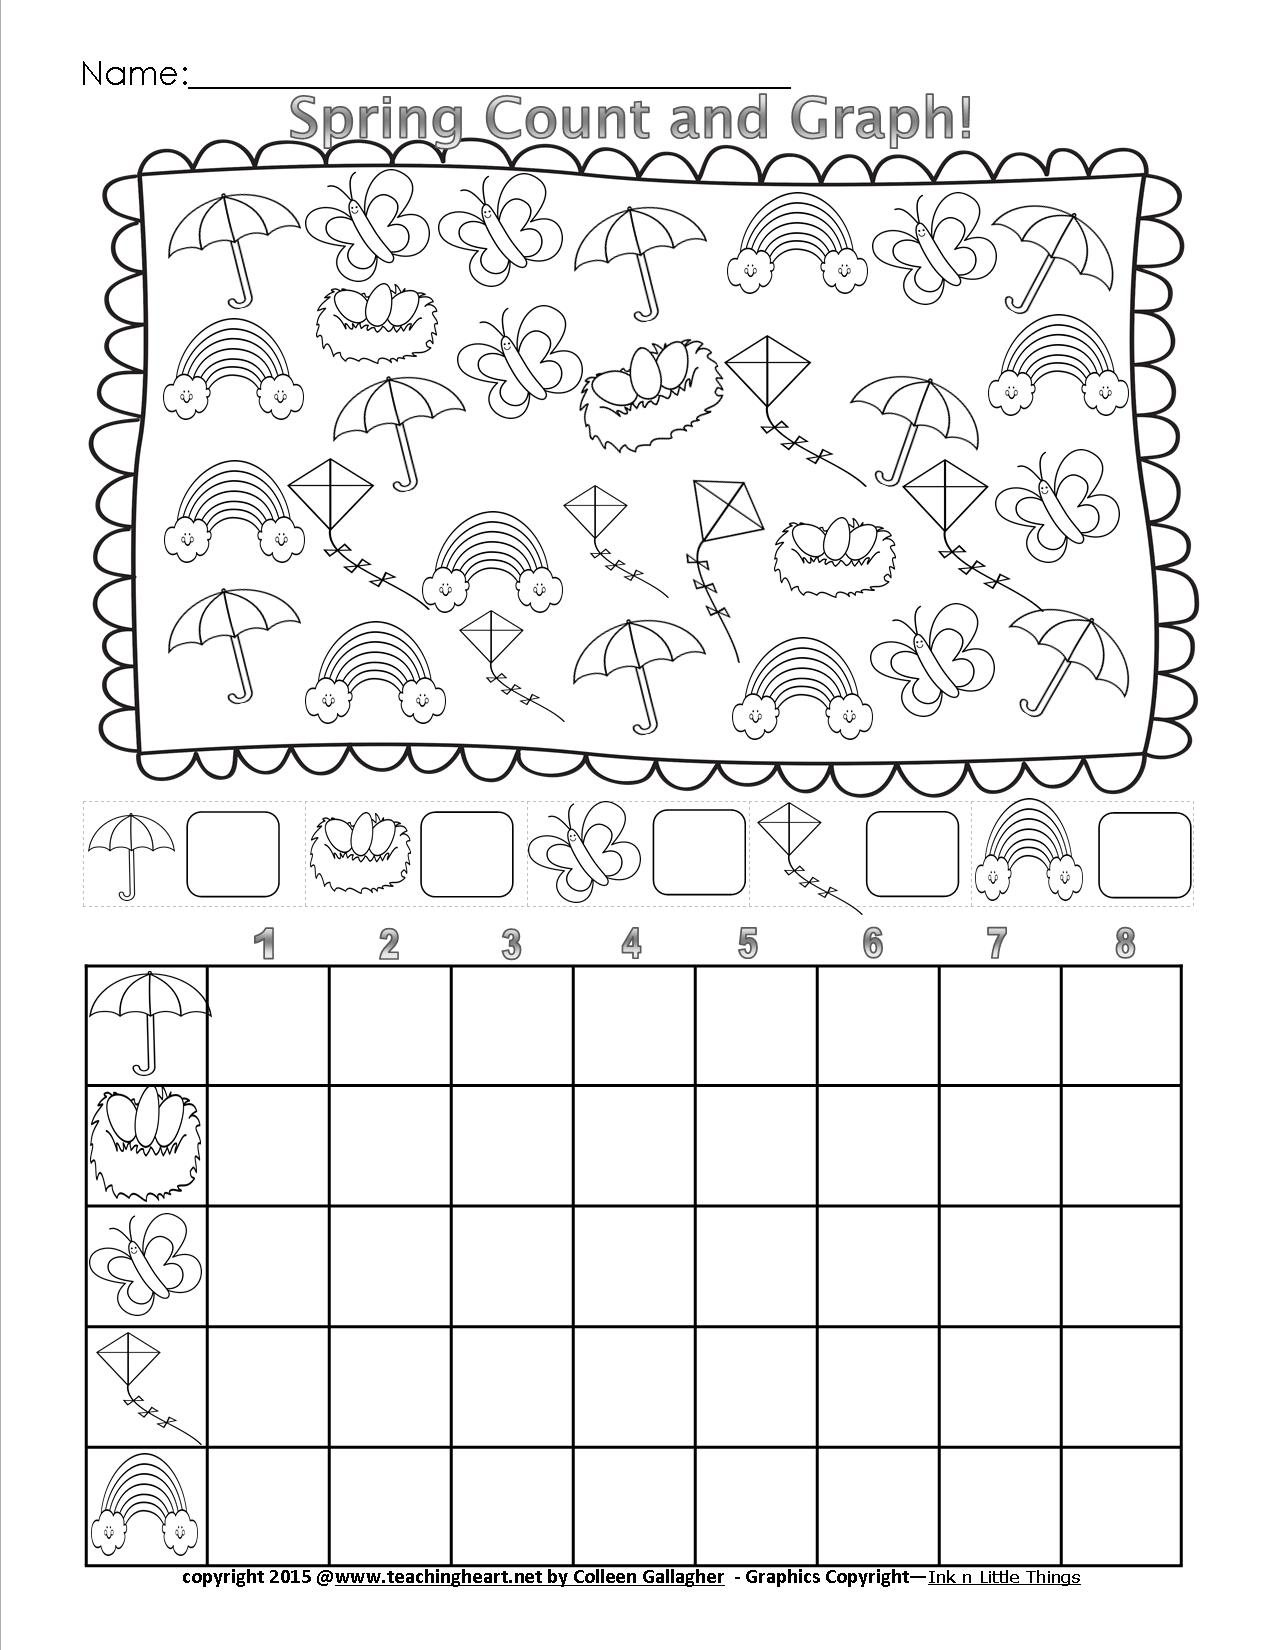 Spring Count And Graph - Free - Teaching Heart Blog Teaching Heart Blog | Free Printable Graph Art Worksheets